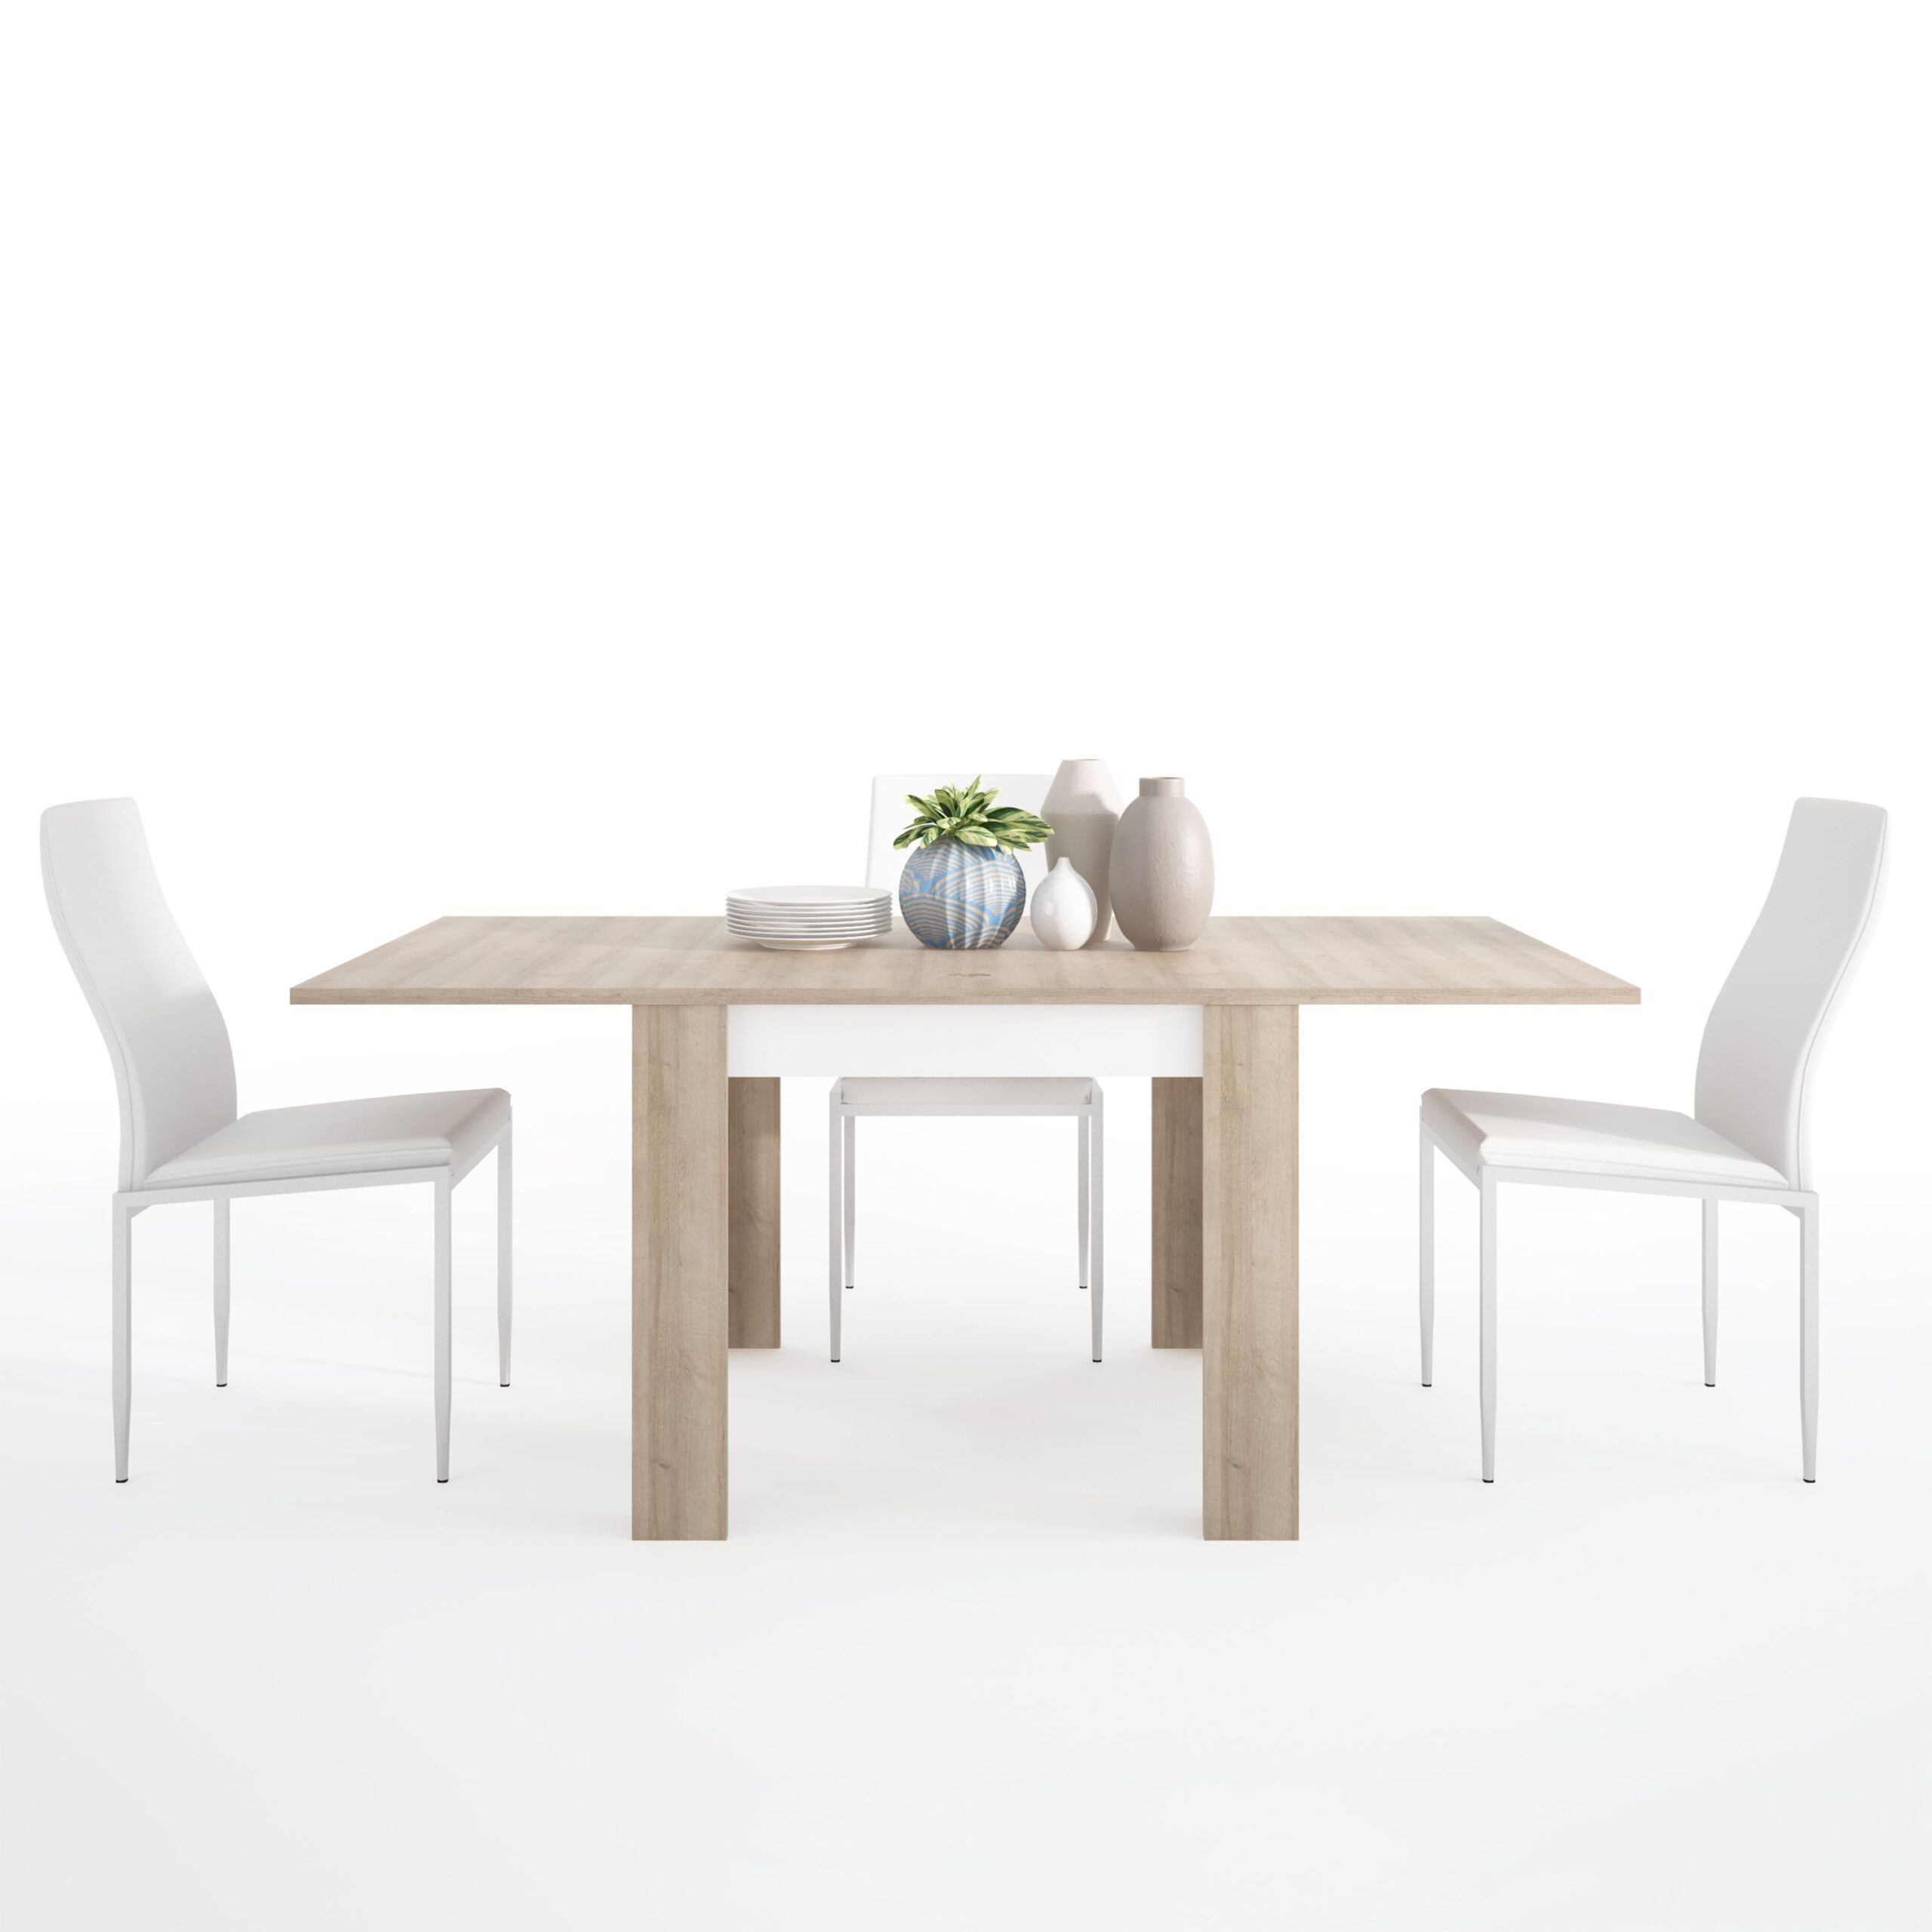 Lion Set Small Extending Table 90/180Cm + 6 Lillie High Chair White.